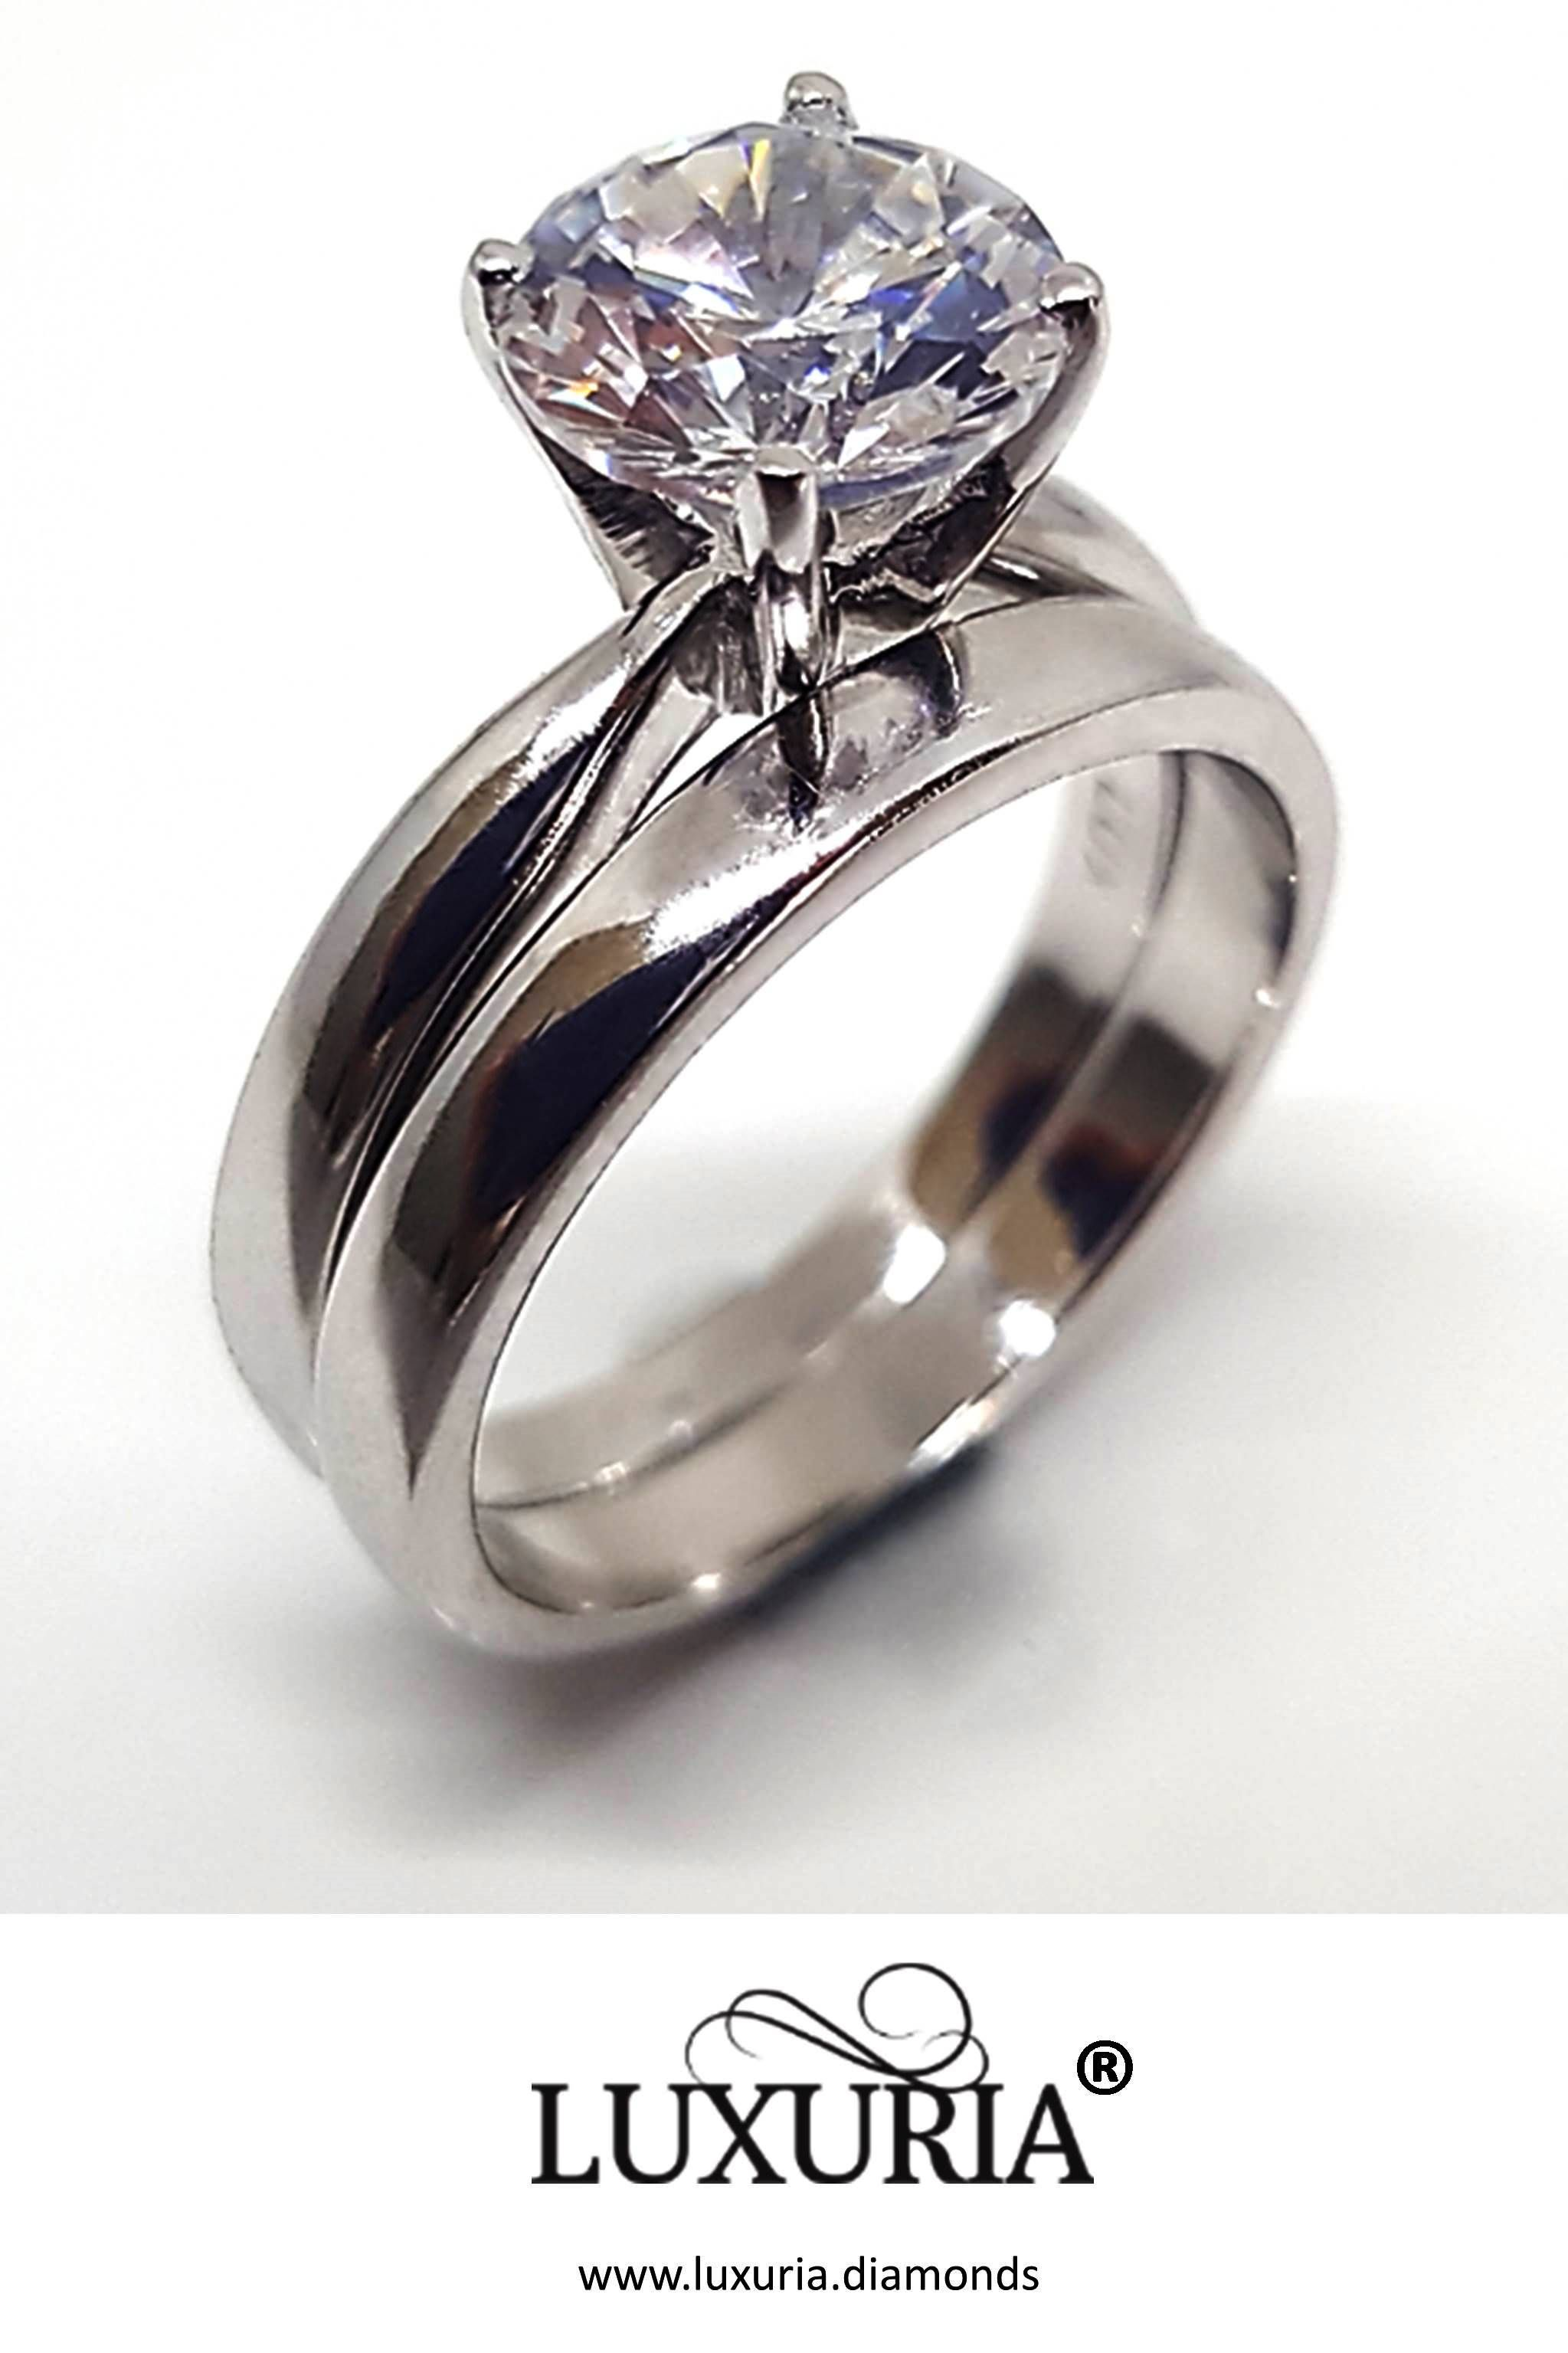 Sterling Silver Round Cut 2.5 Carat Simulated Diamond Wedding Engagement Solitaire Propose Ring